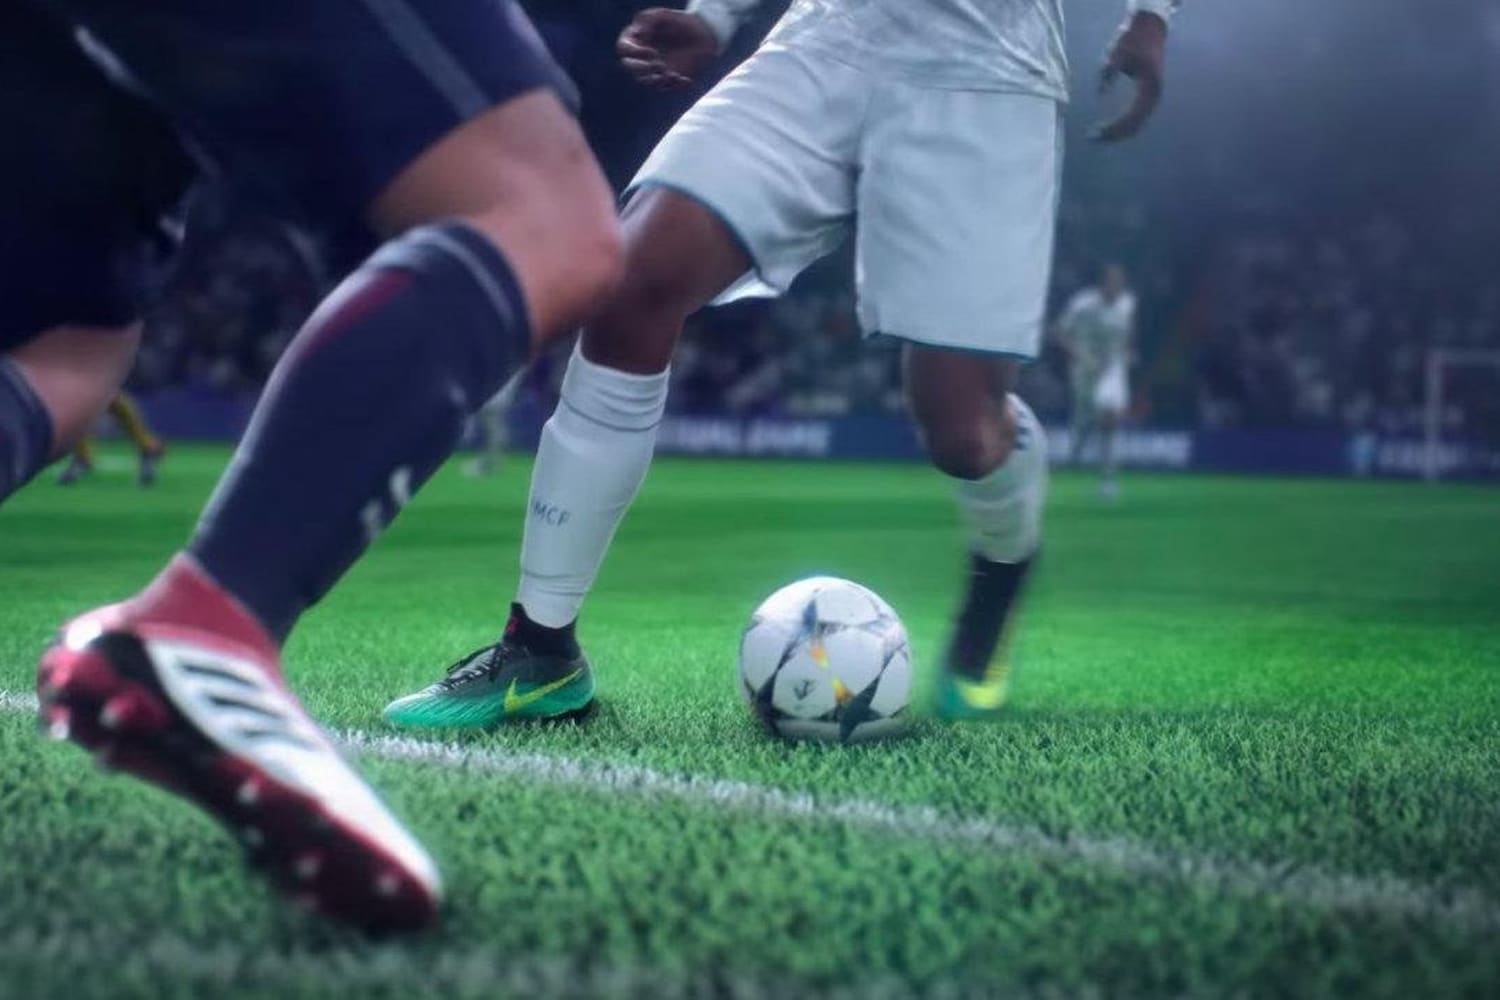 FIFA 19 dribbling tips: 6 tricks you need to learn